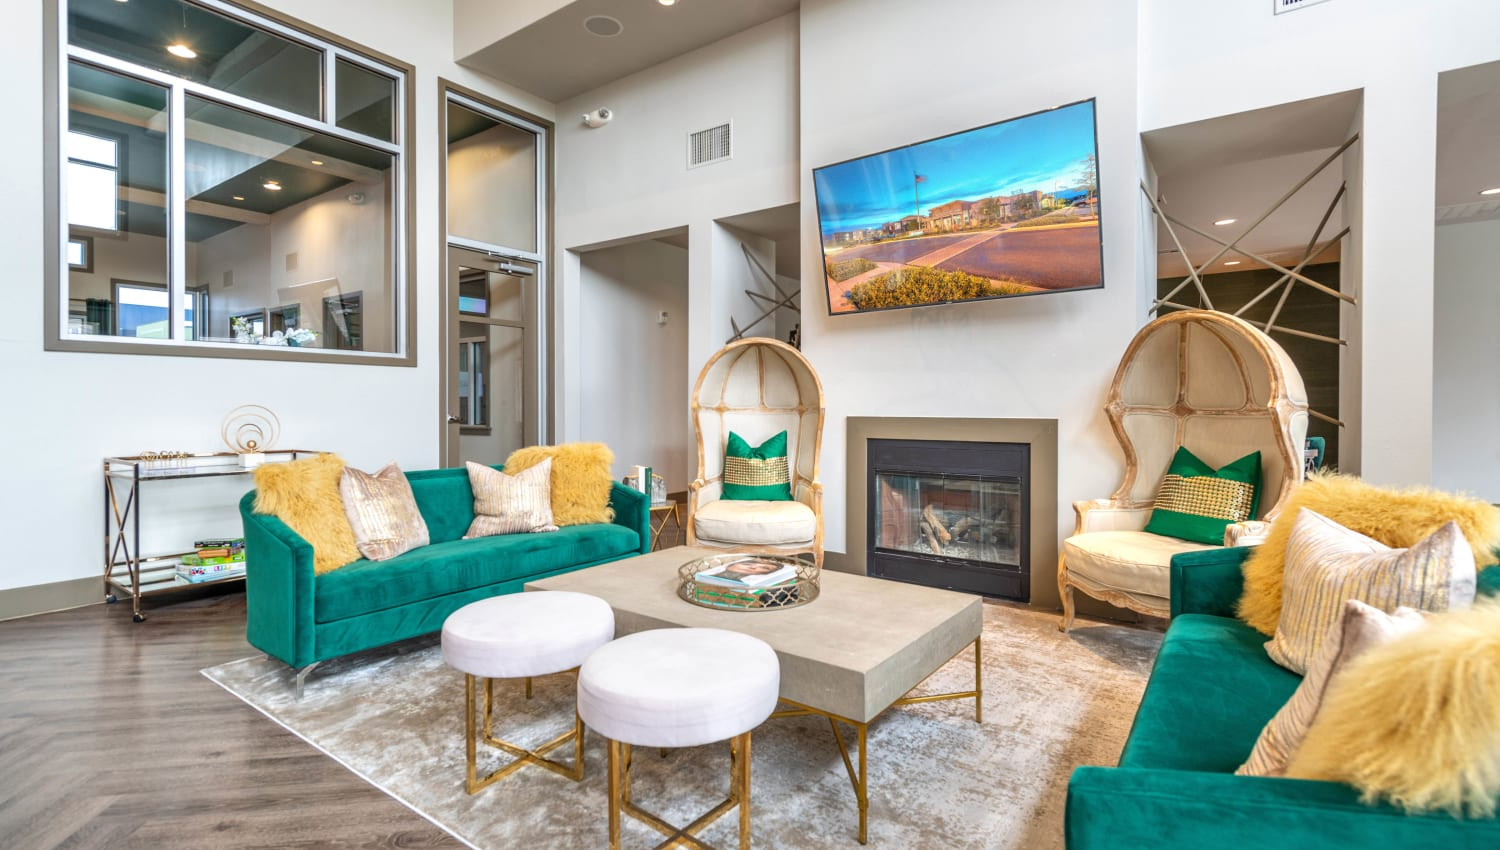 Lounge area near the fireplace in the resident clubhouse at Olympus at Daybreak in South Jordan, Utah